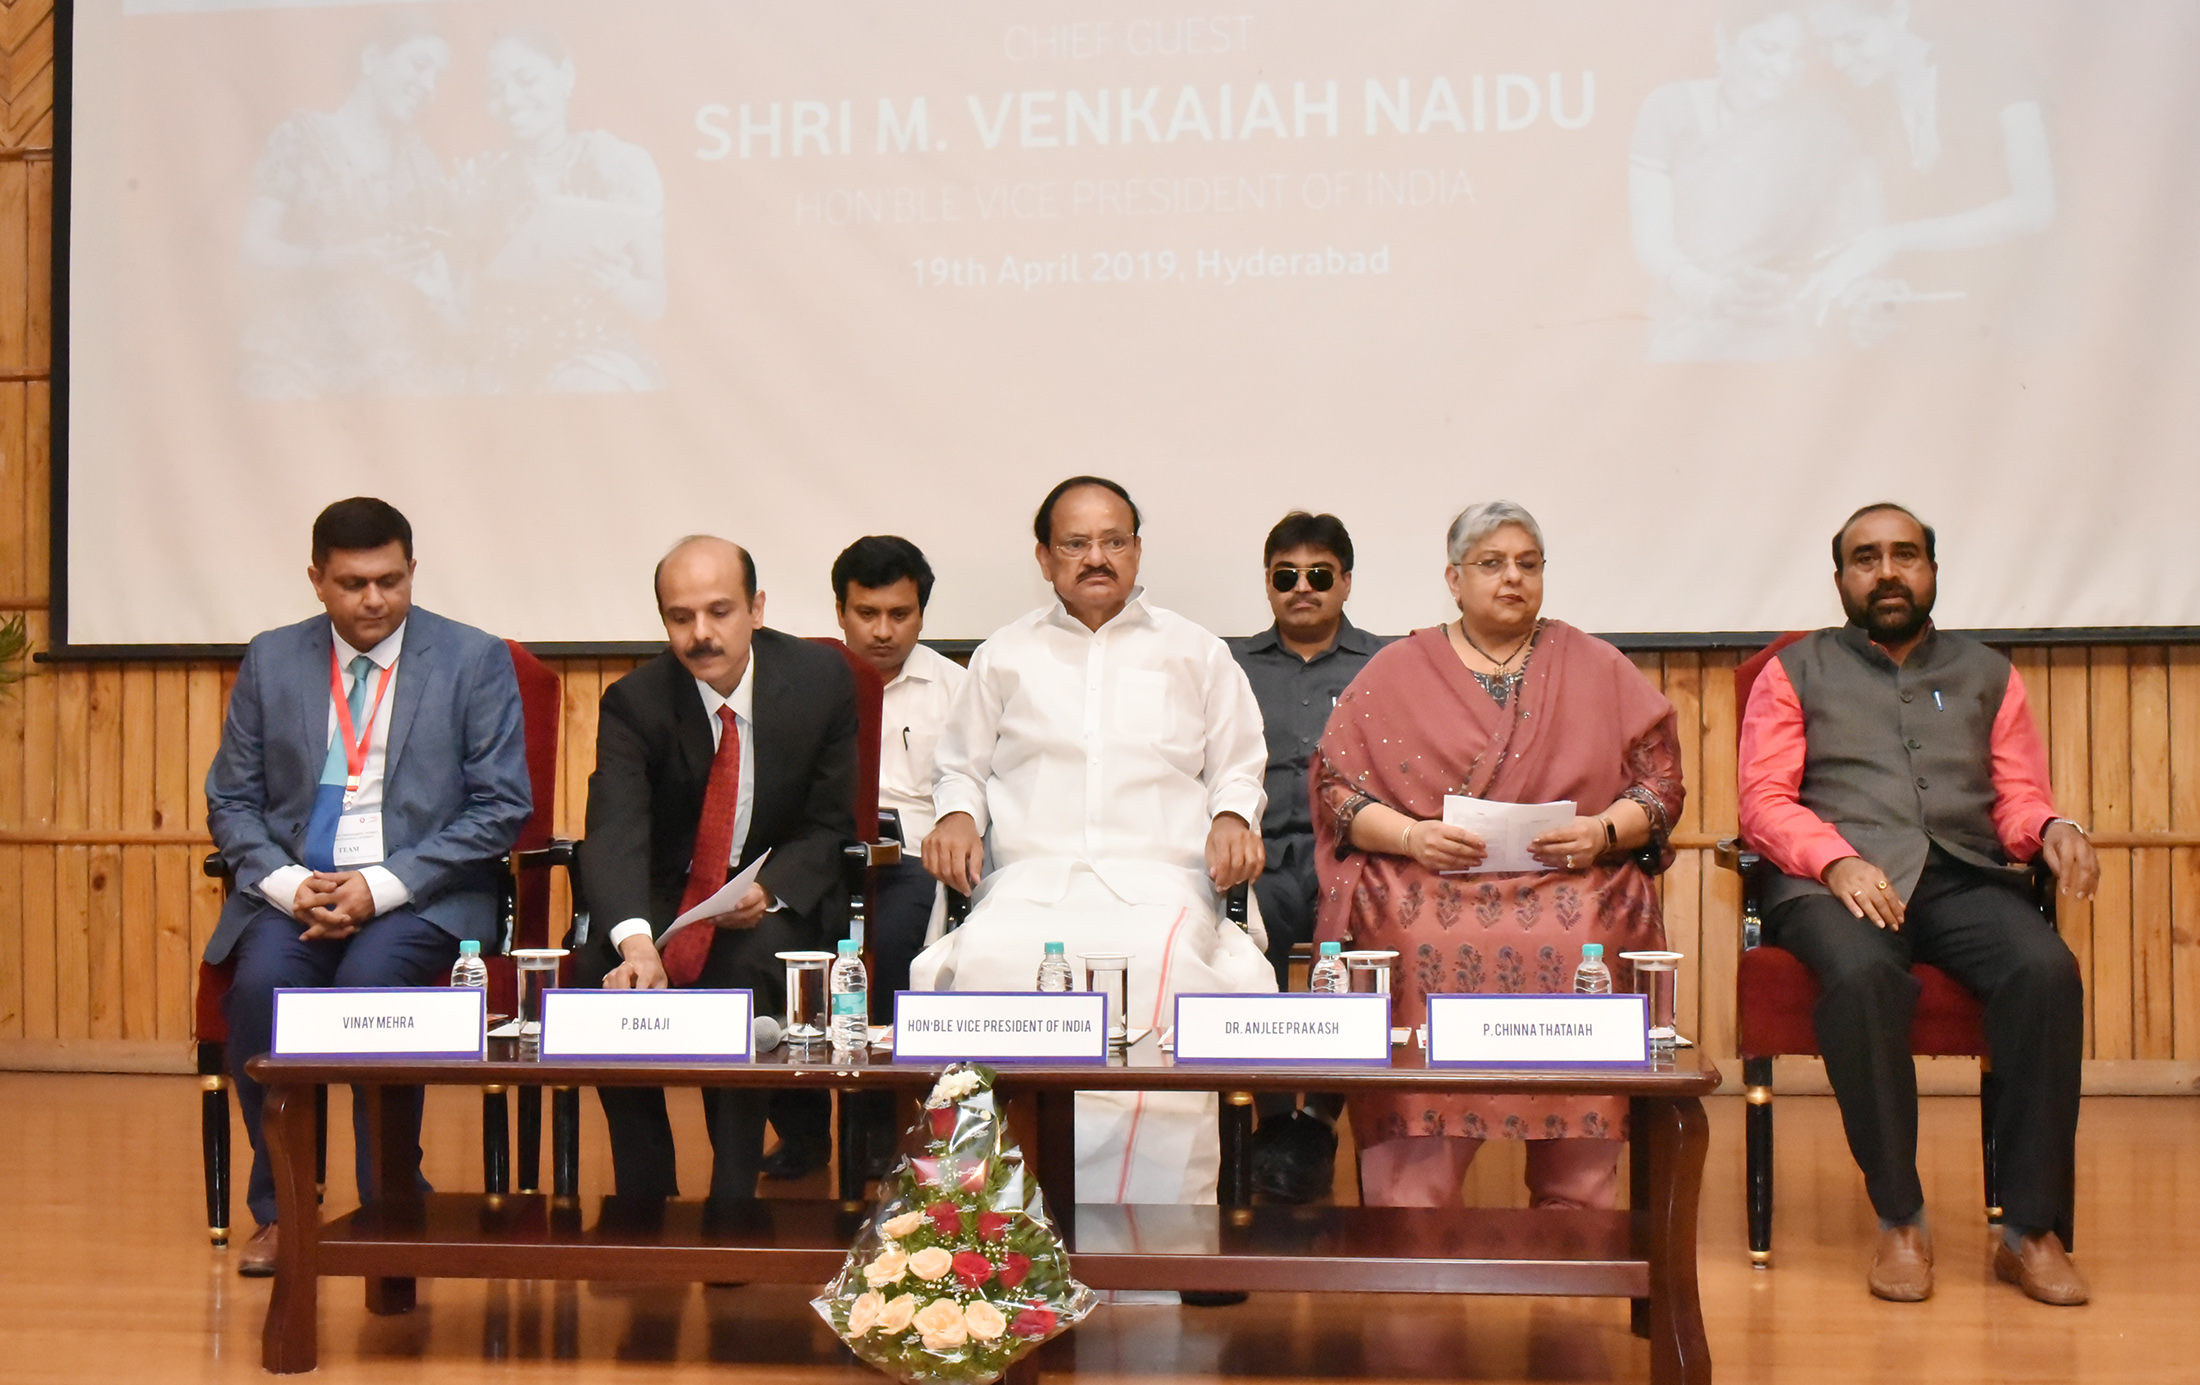 The Vice President, Shri M. Venkaiah Naidu at the National Conclave on Women's Empowerment Through Financial Literacy, organized by the Learning Links Foundation, in Hyderabad on April 19, 2019.